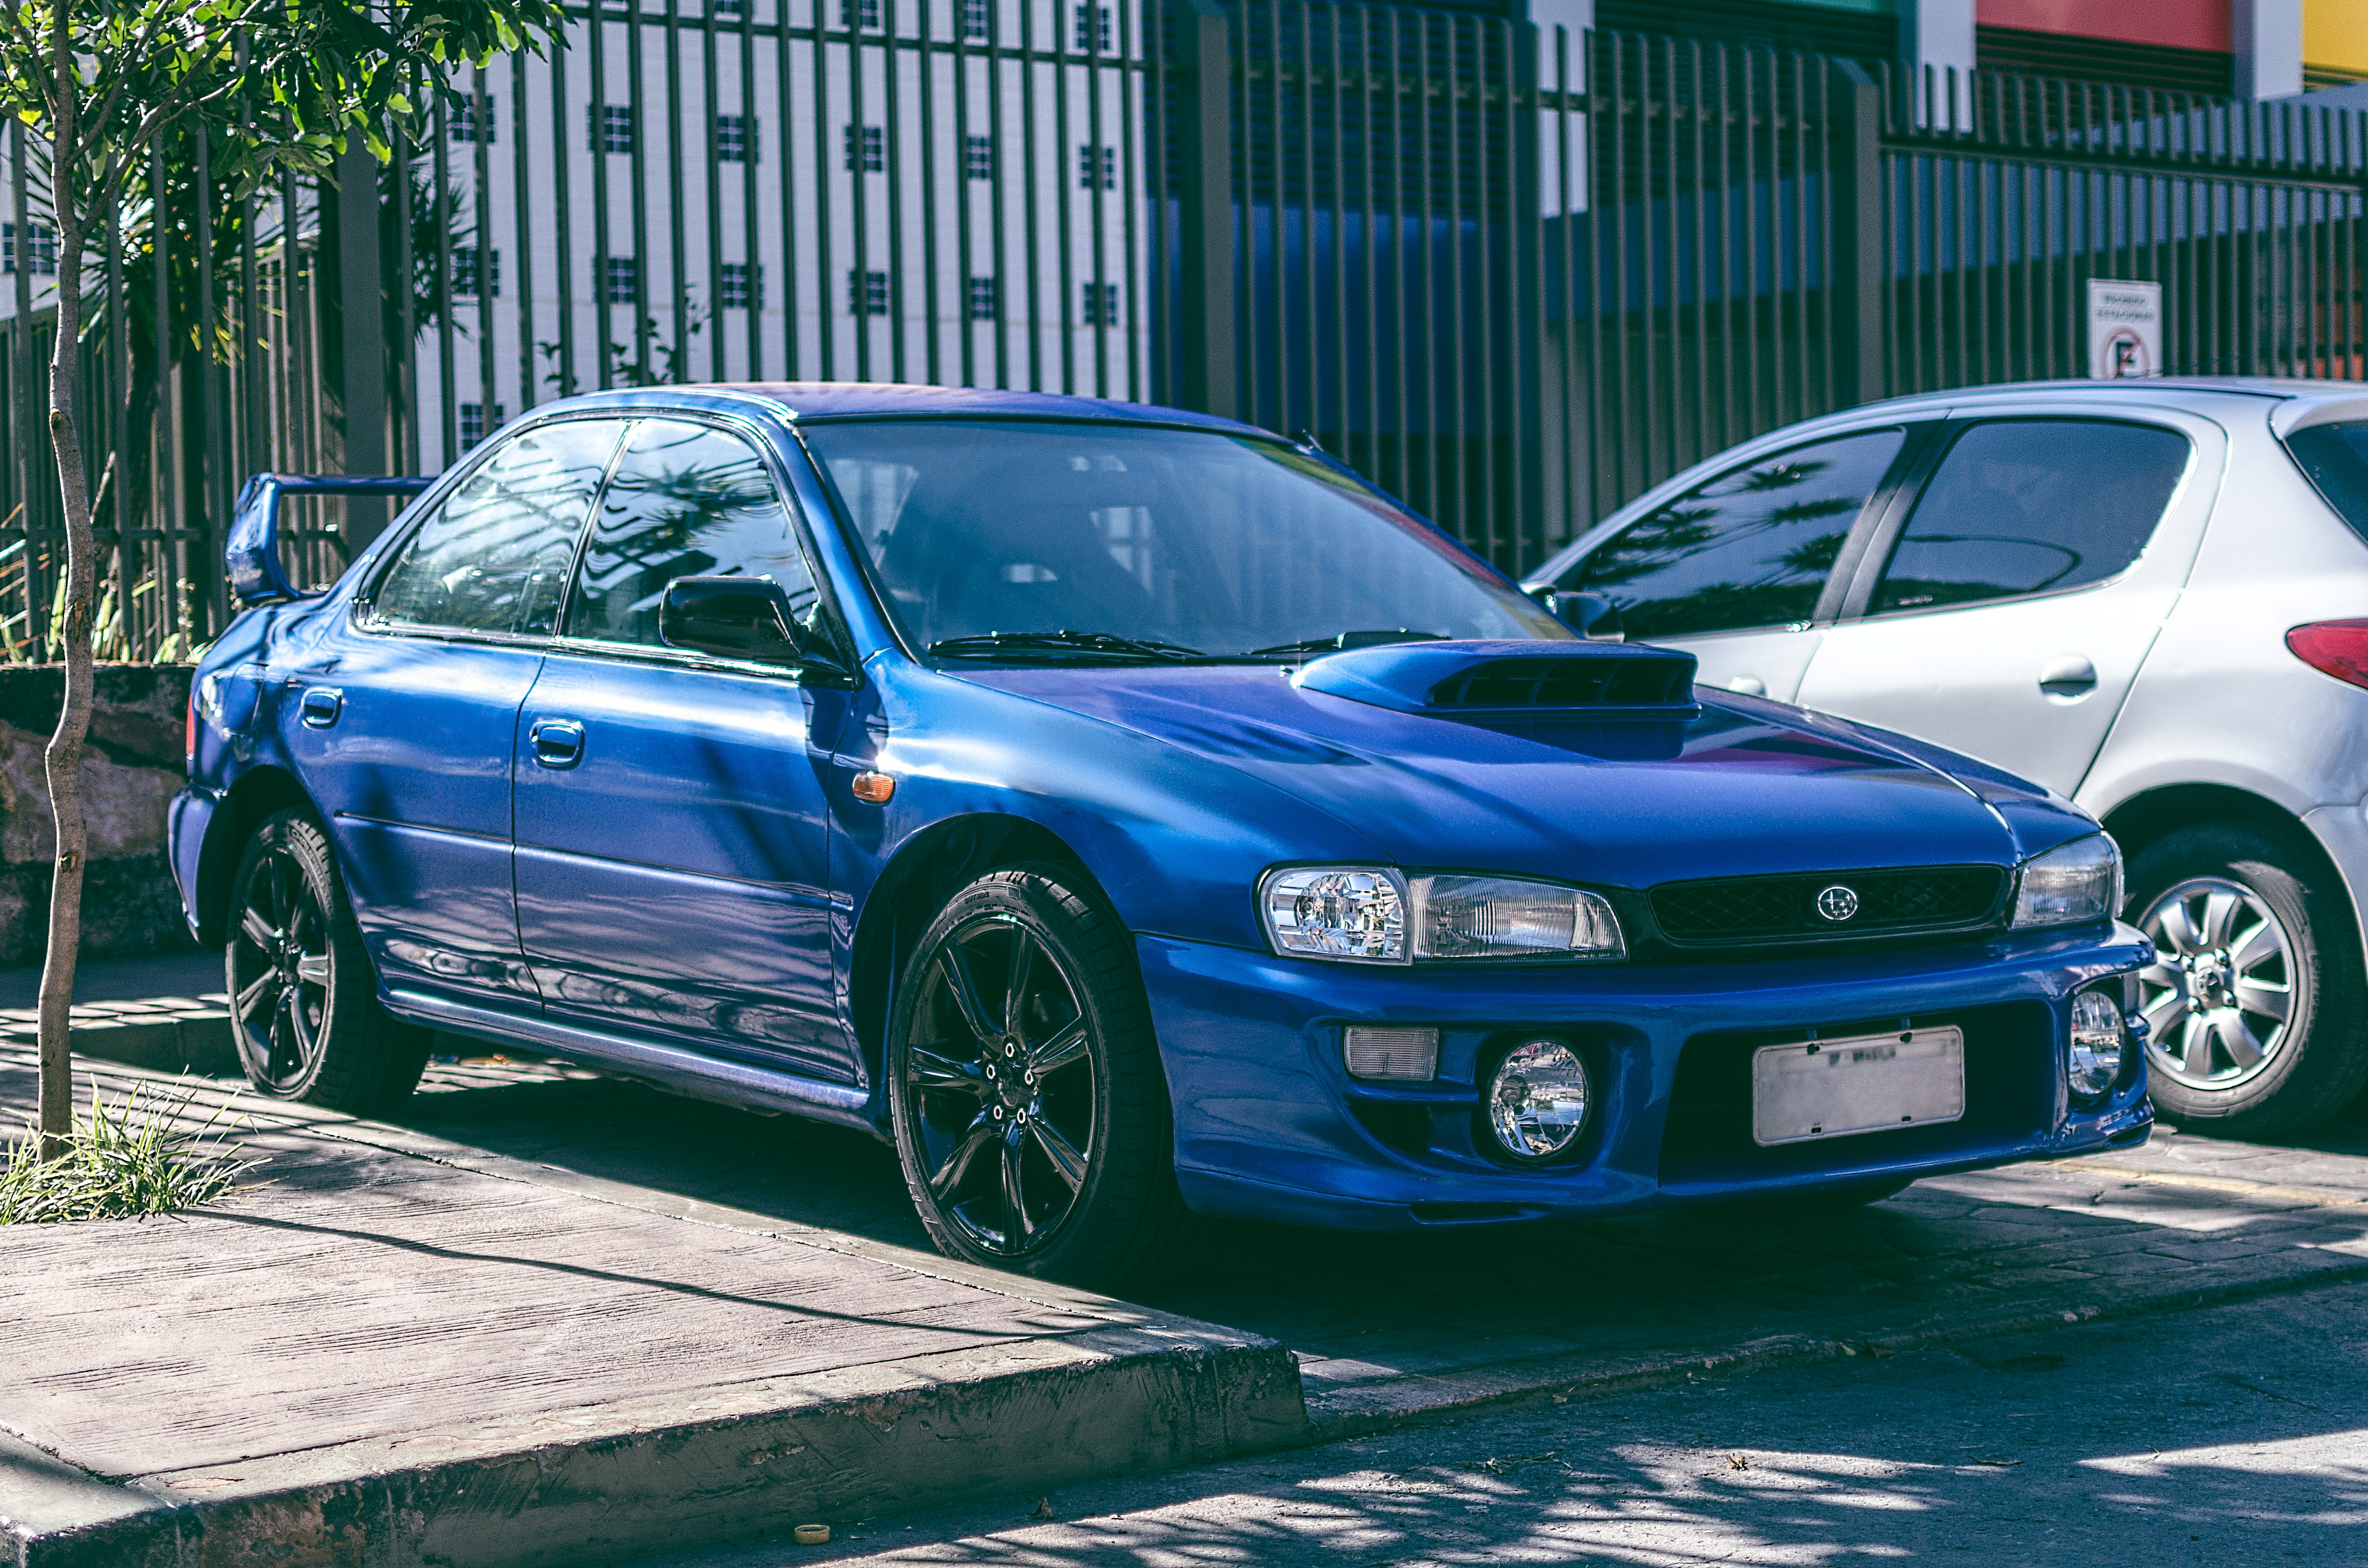 Free stock photo of car, import, Impreza, Japanese